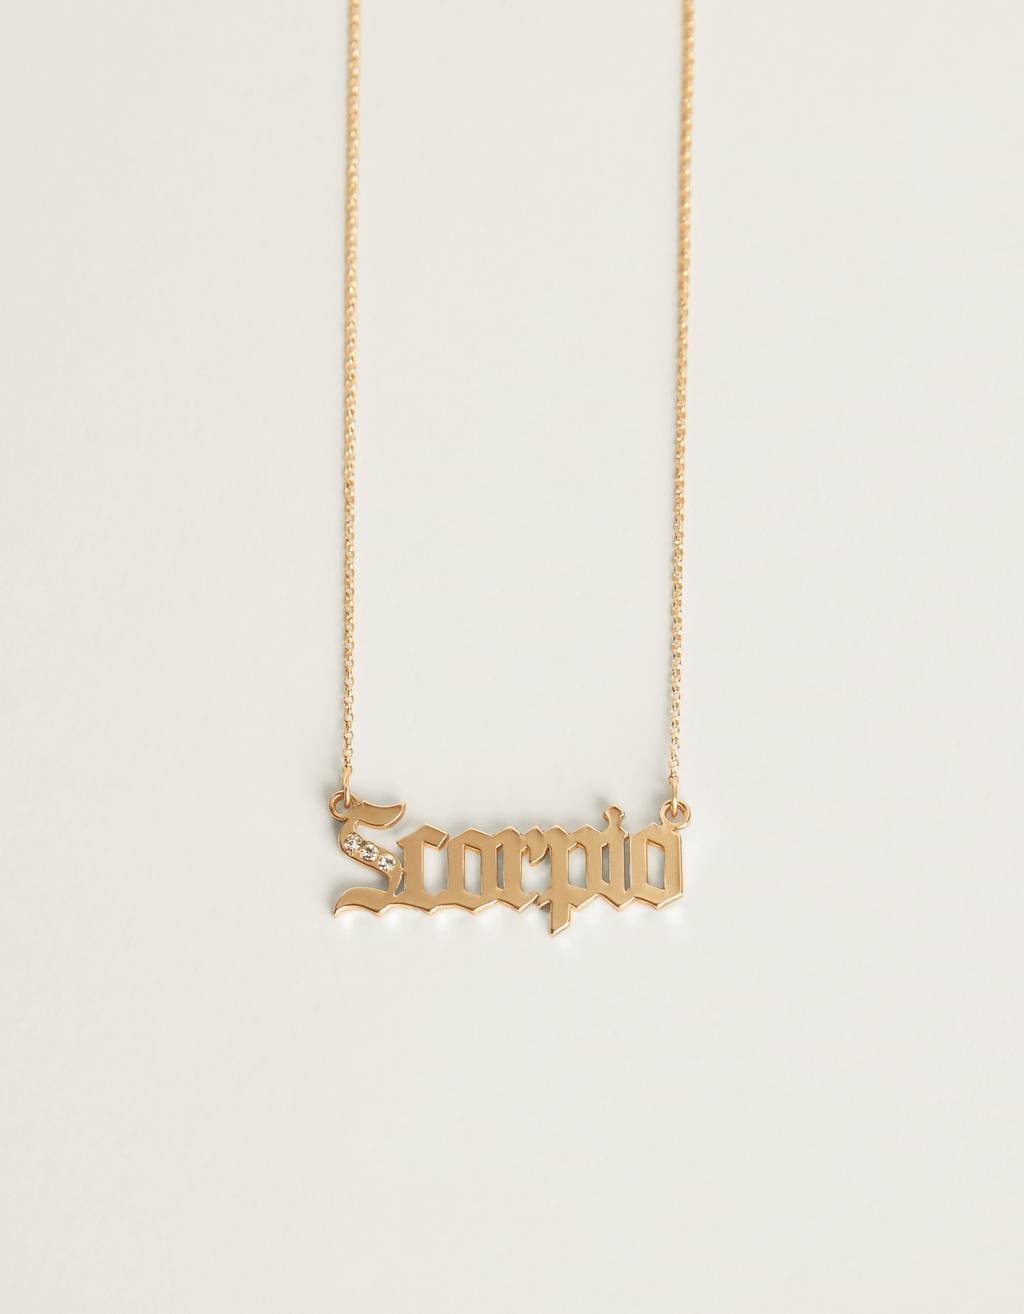 Scorpio zodiac necklace